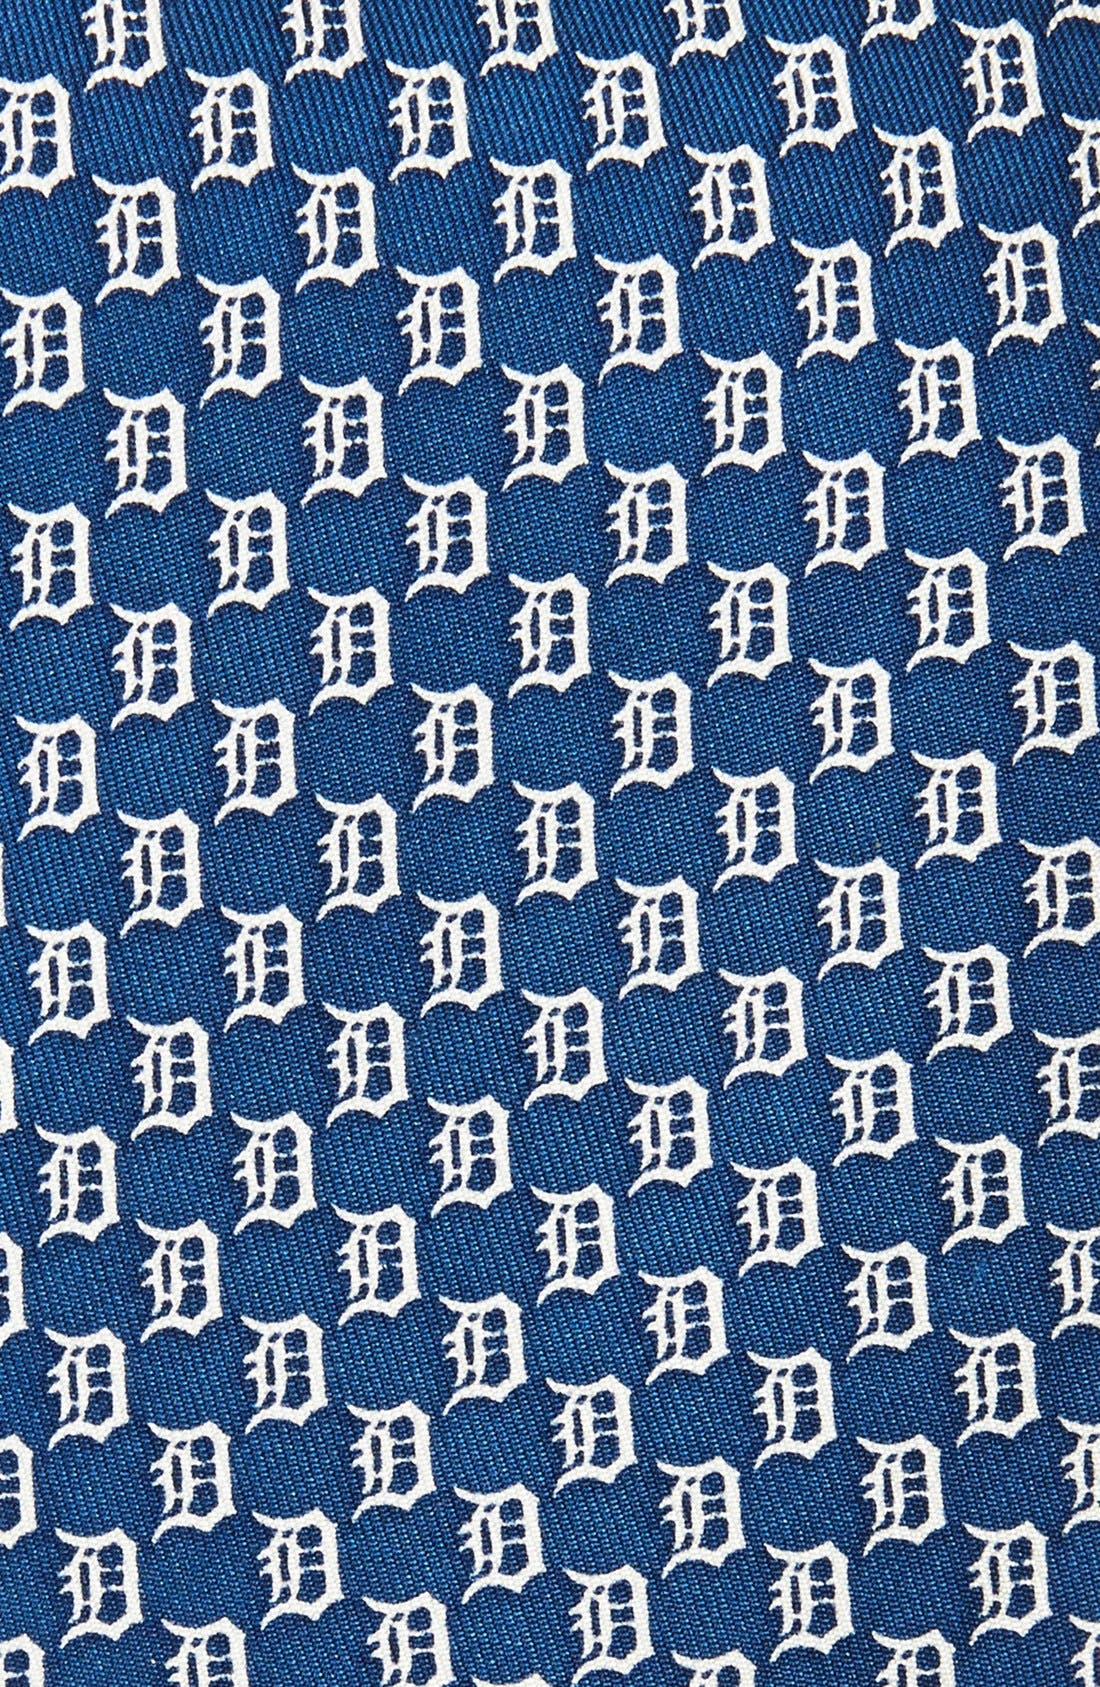 'Detroit Tigers - MLB' Woven Silk Tie,                             Alternate thumbnail 2, color,